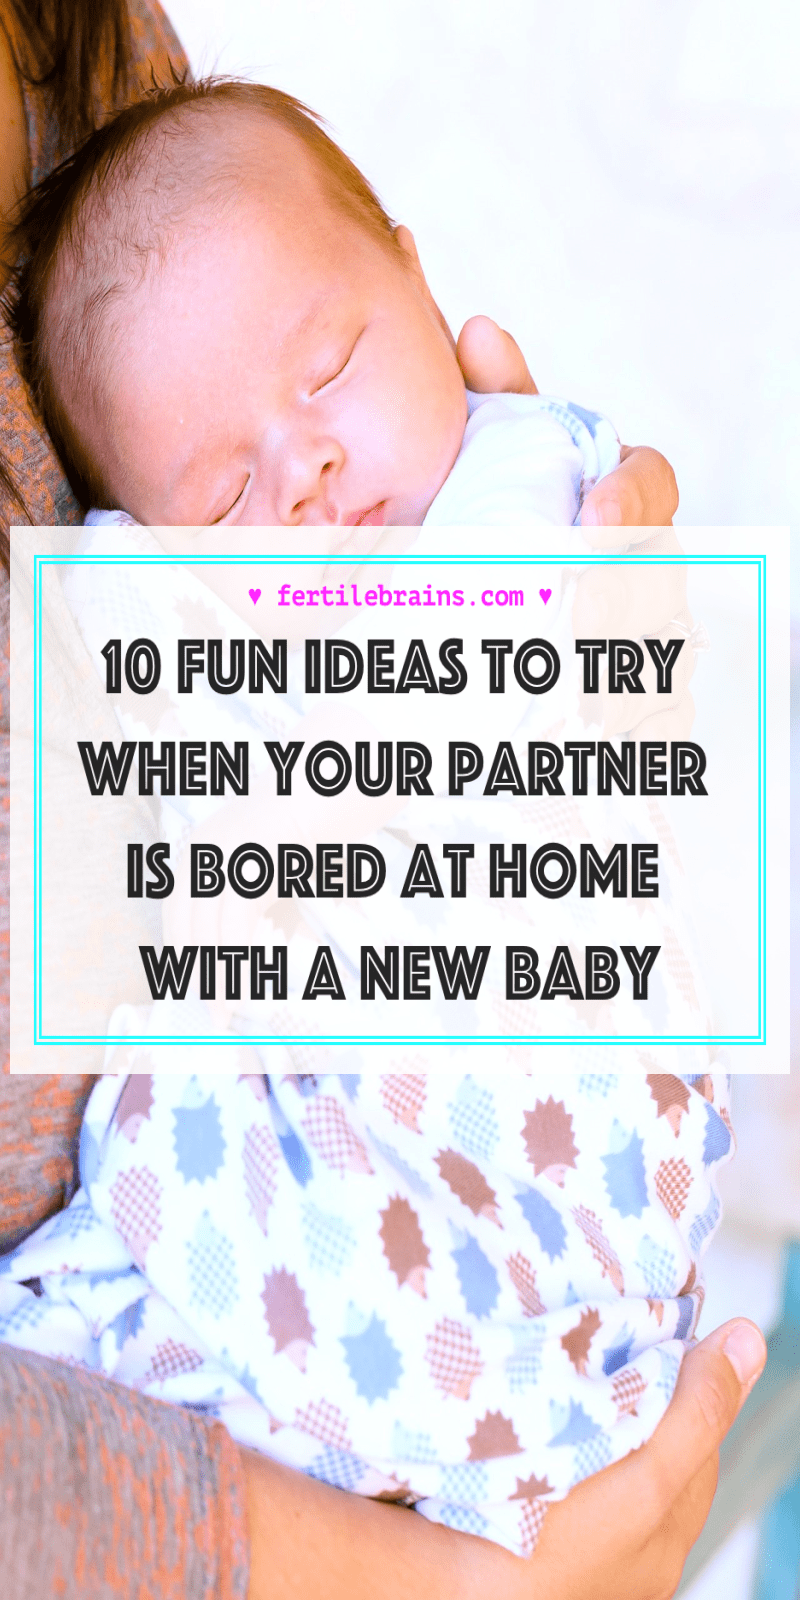 10 fun ideas to try when your partner is bored at home with a new ...